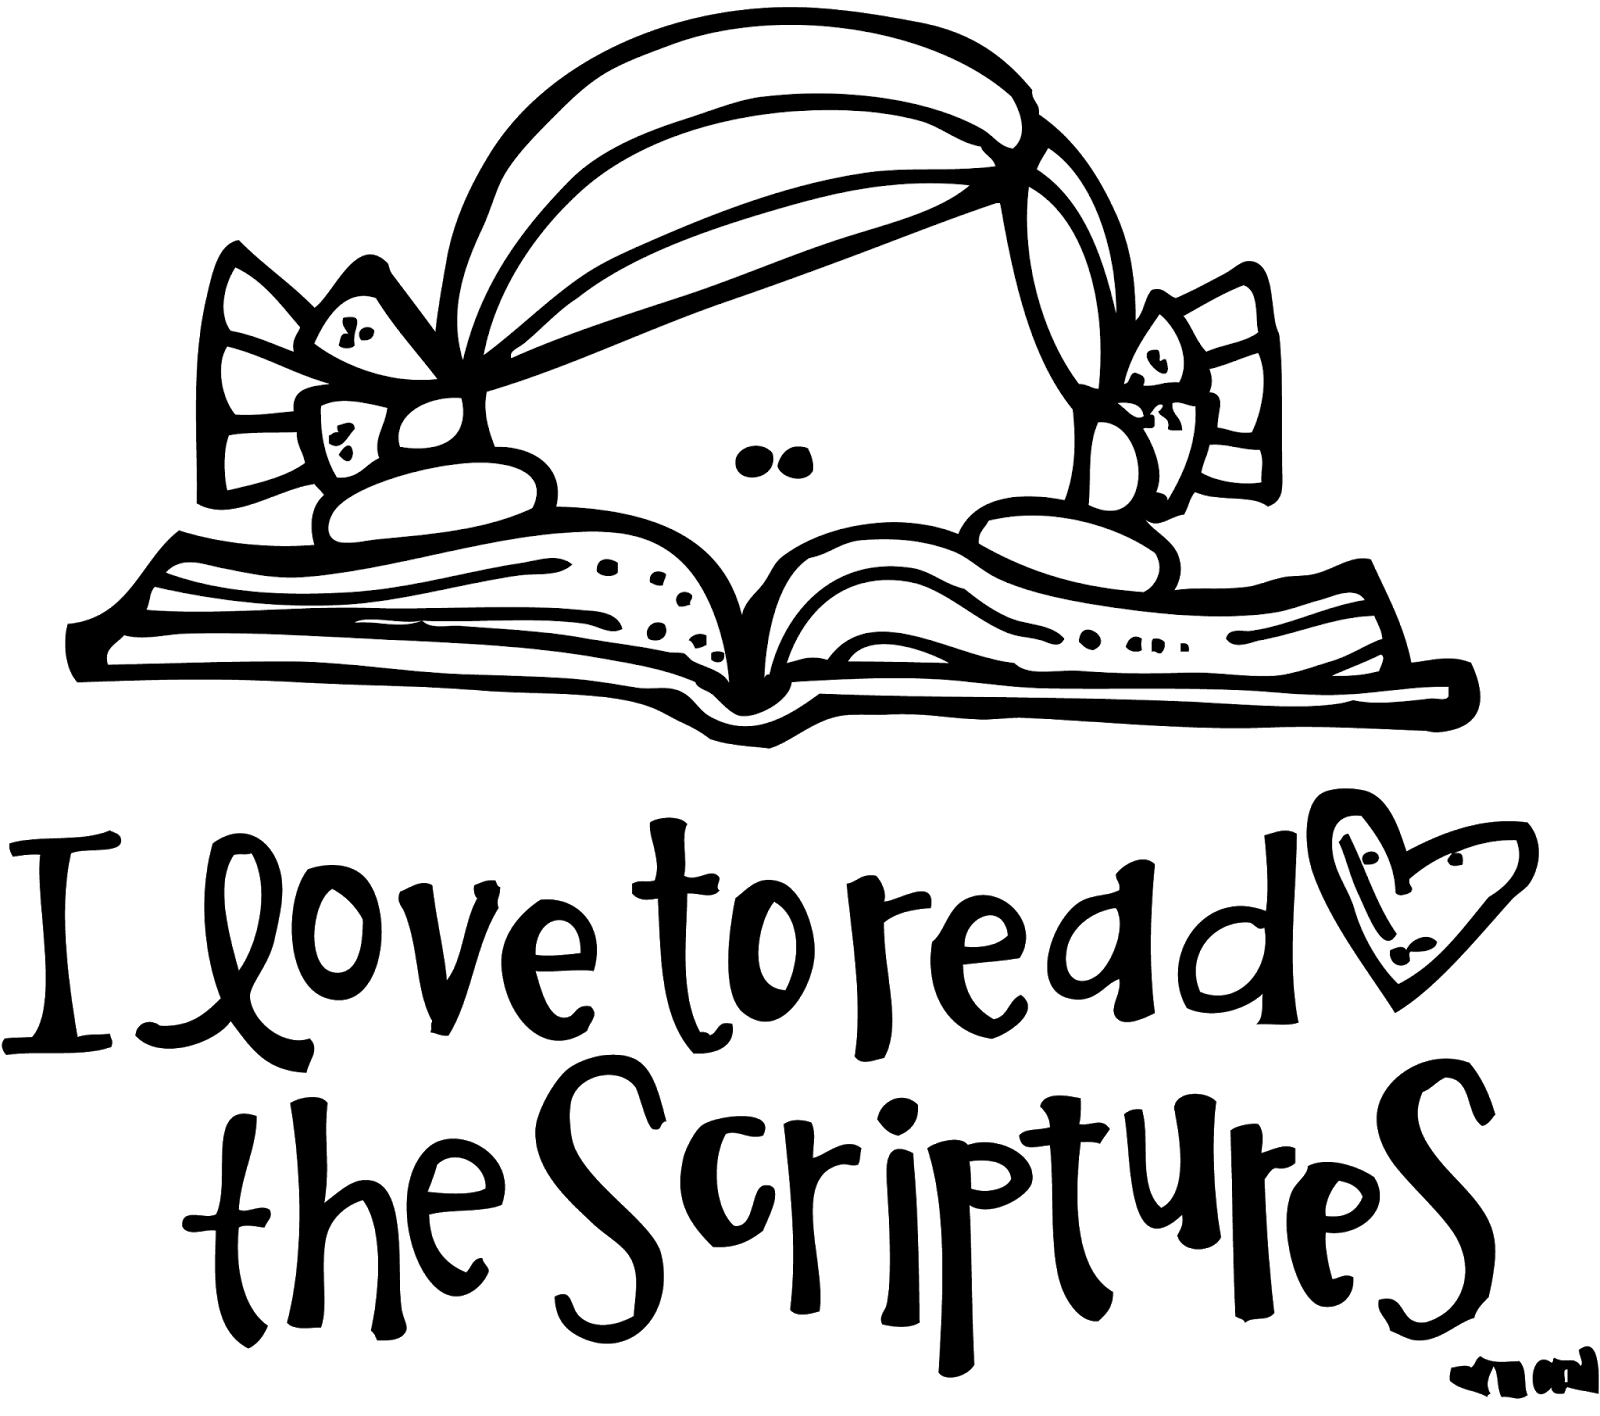 Book of mormon . Lds clipart melonheadz